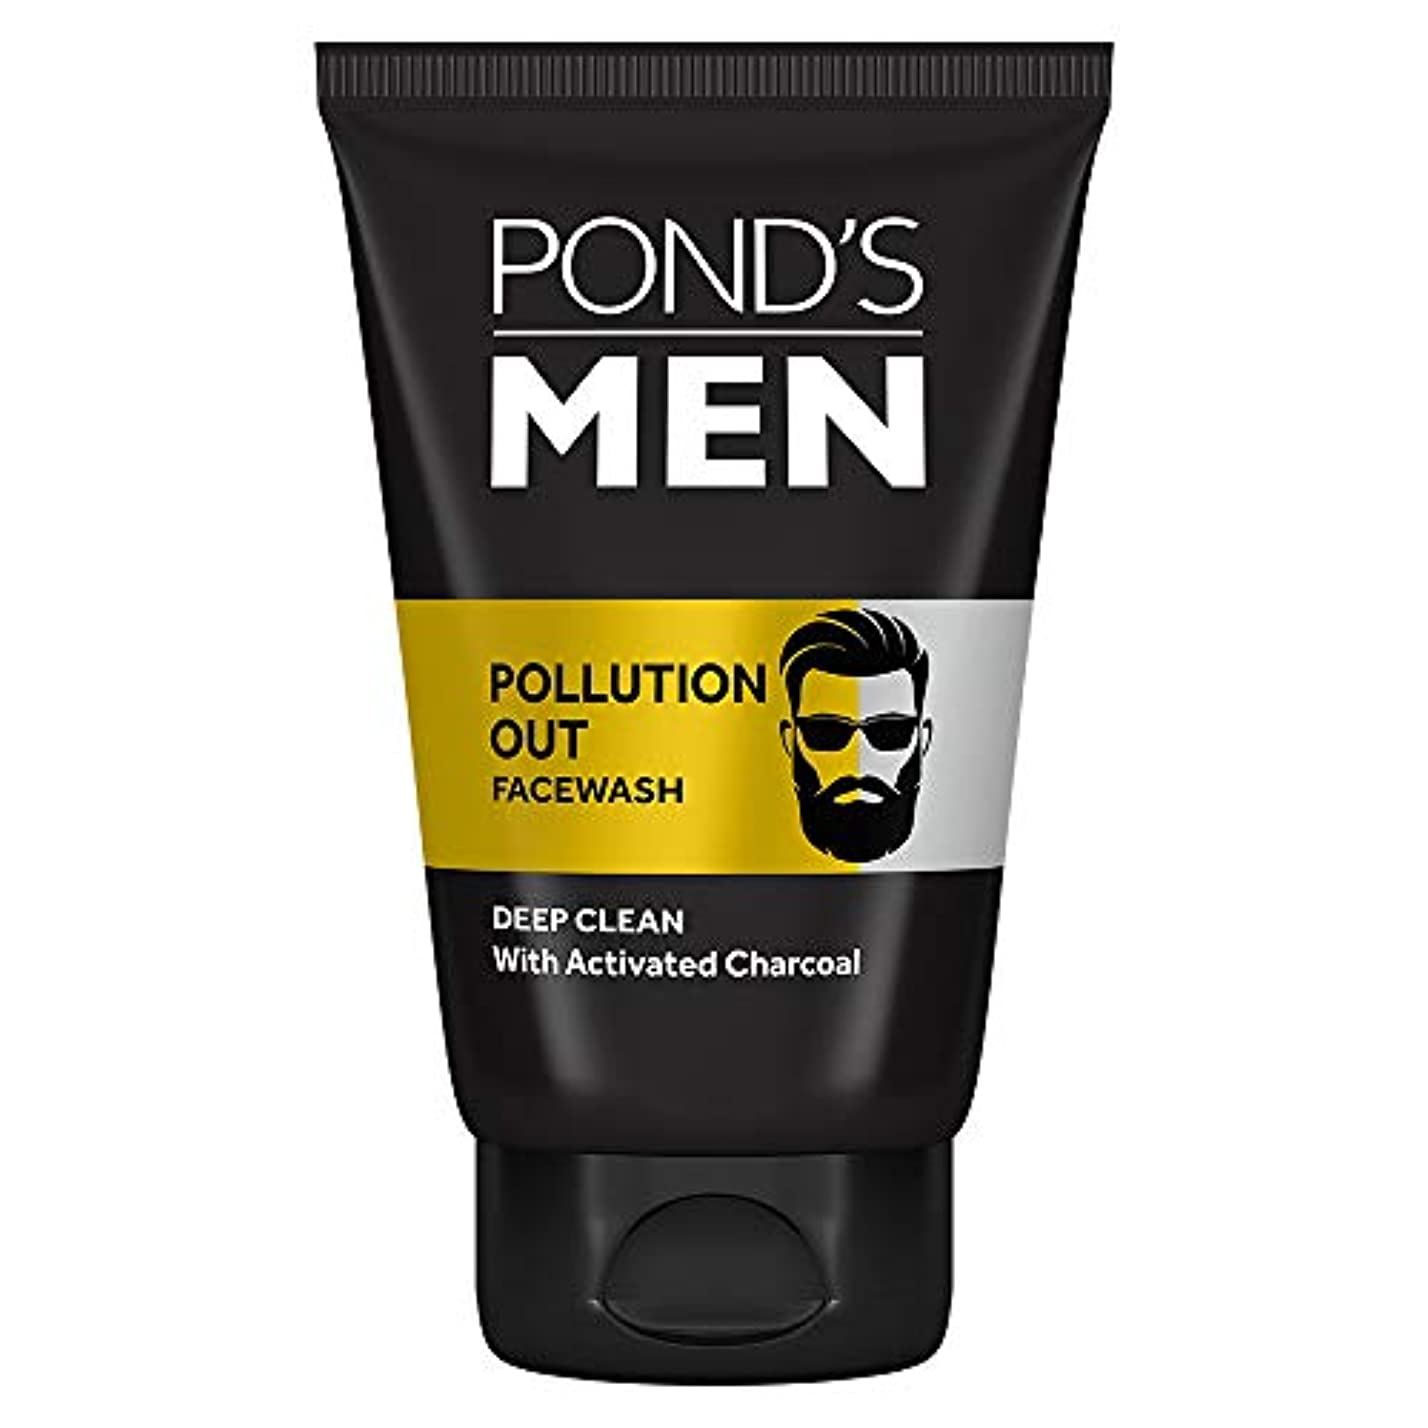 サージ組み合わせ羨望Pond's Men Pollution Out Face Wash, Feel Fresh 100gm